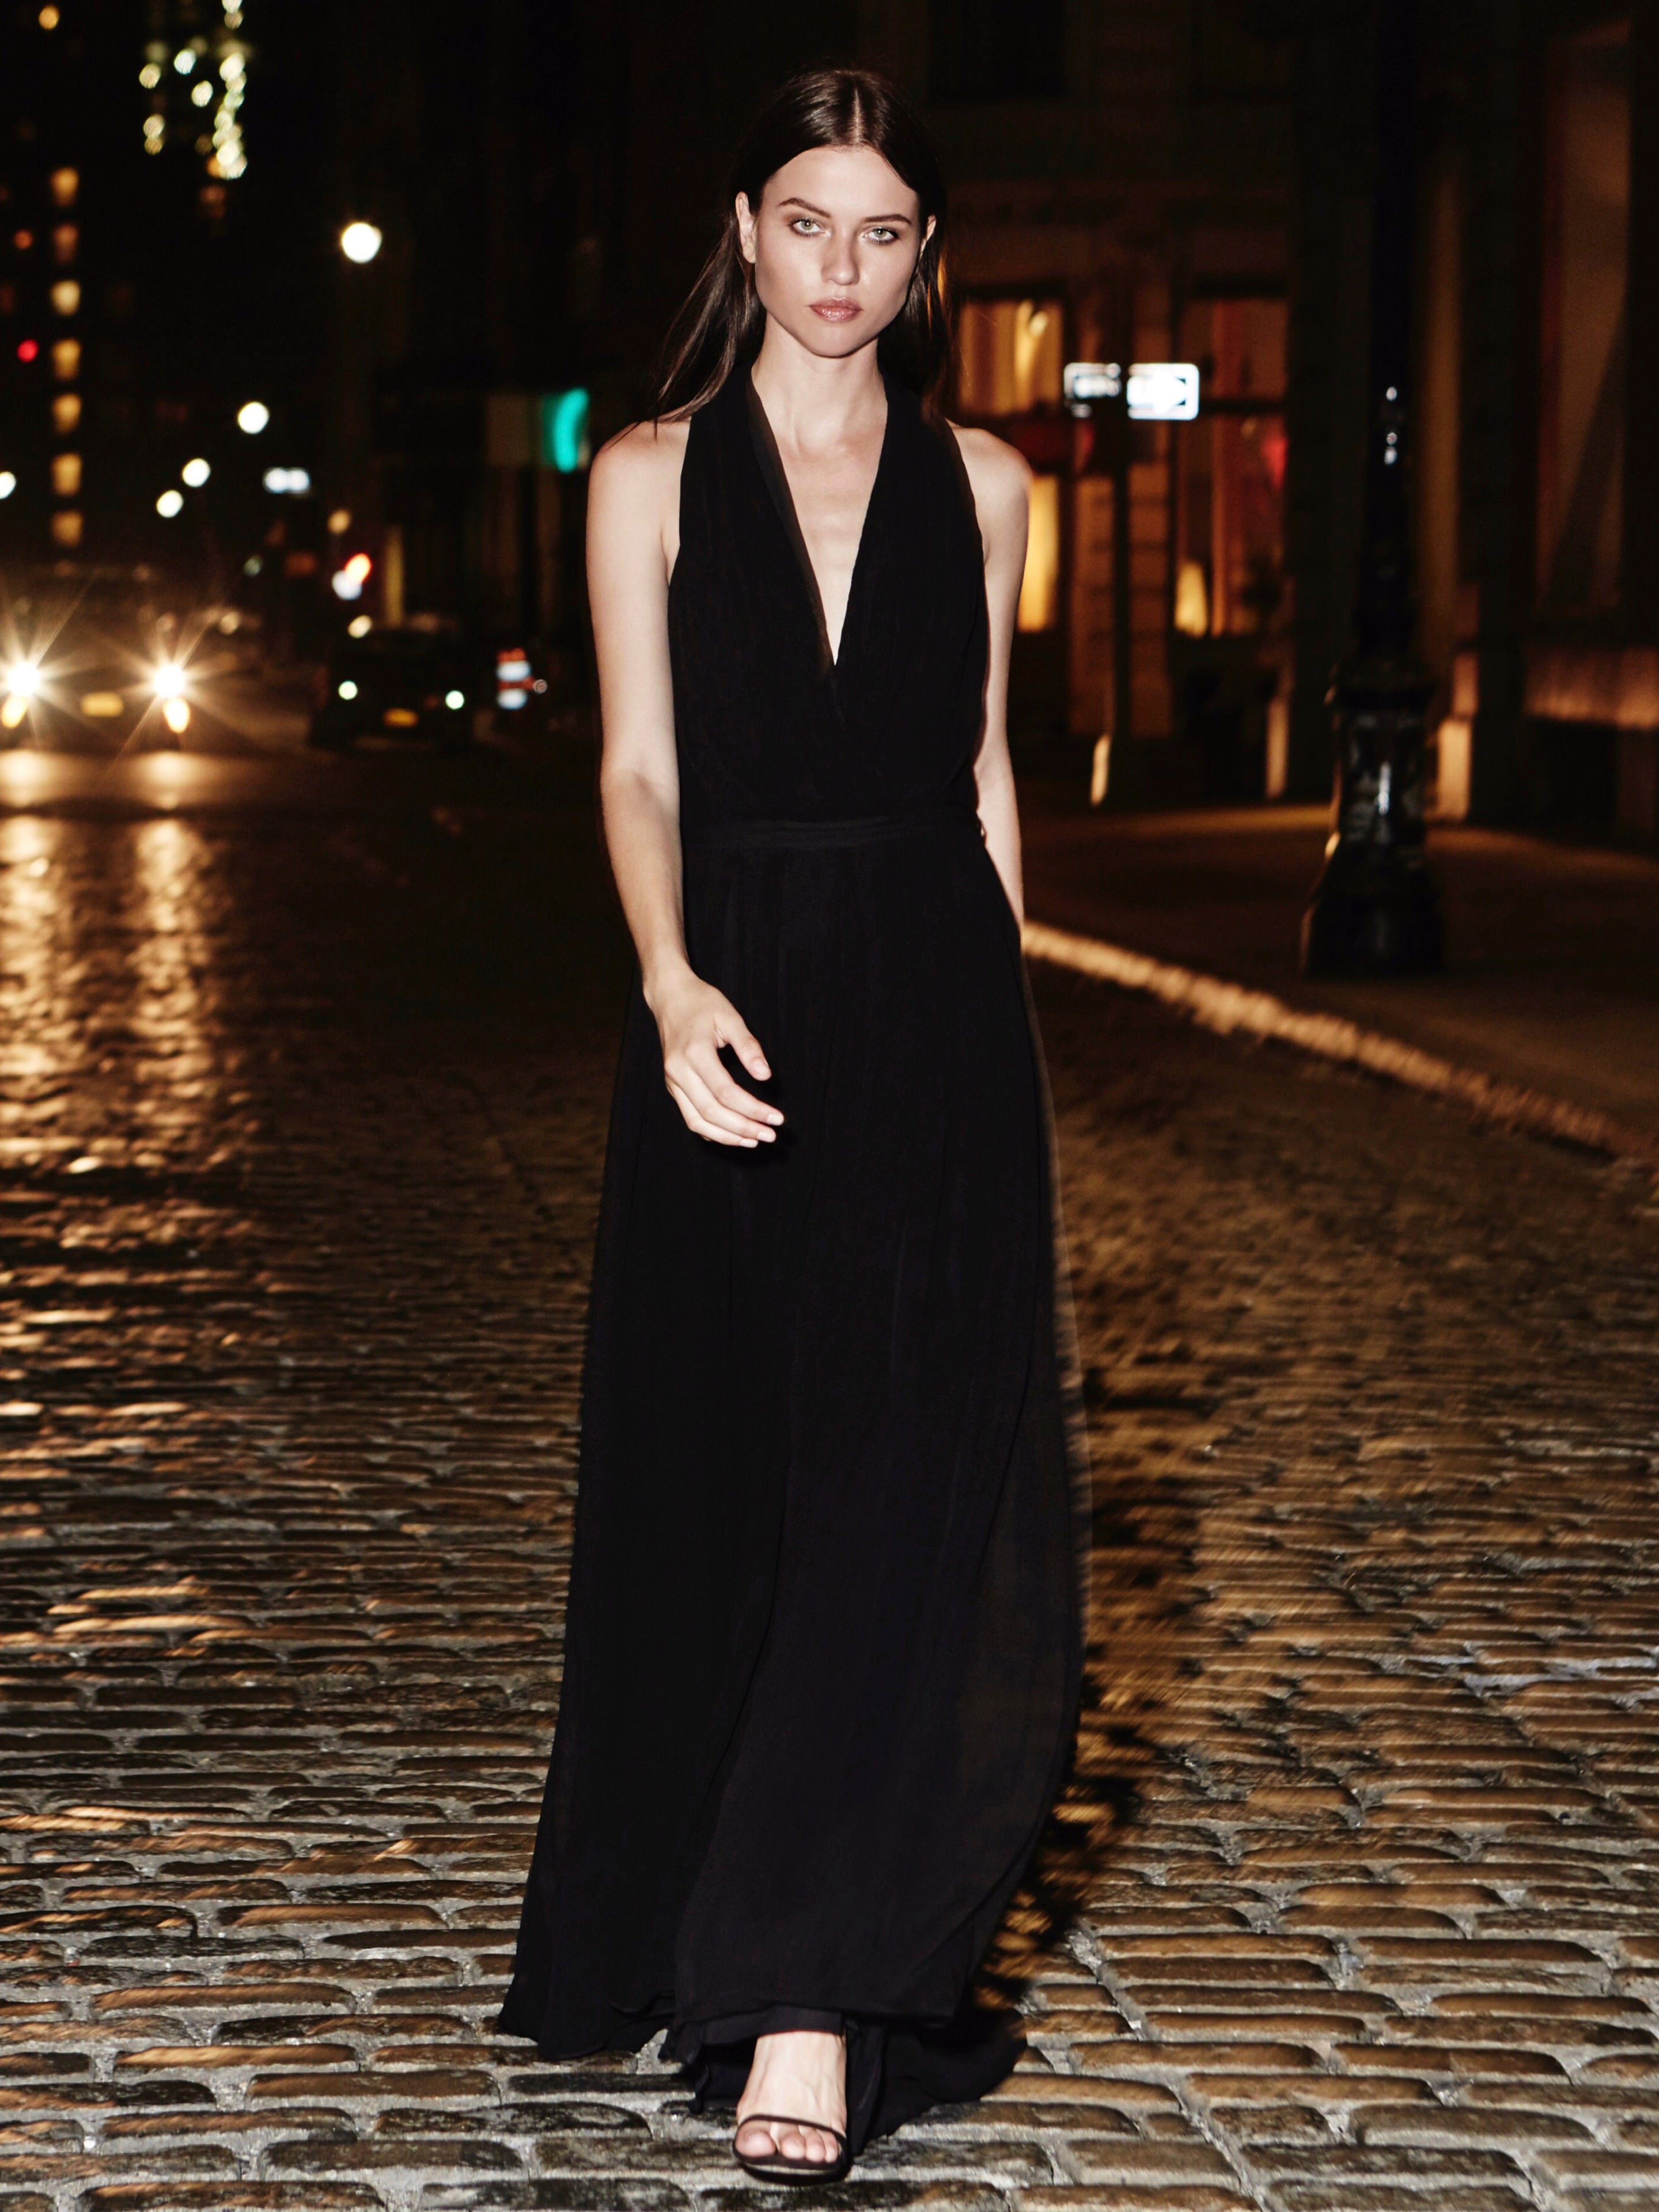 Seraphine wearing gown in black